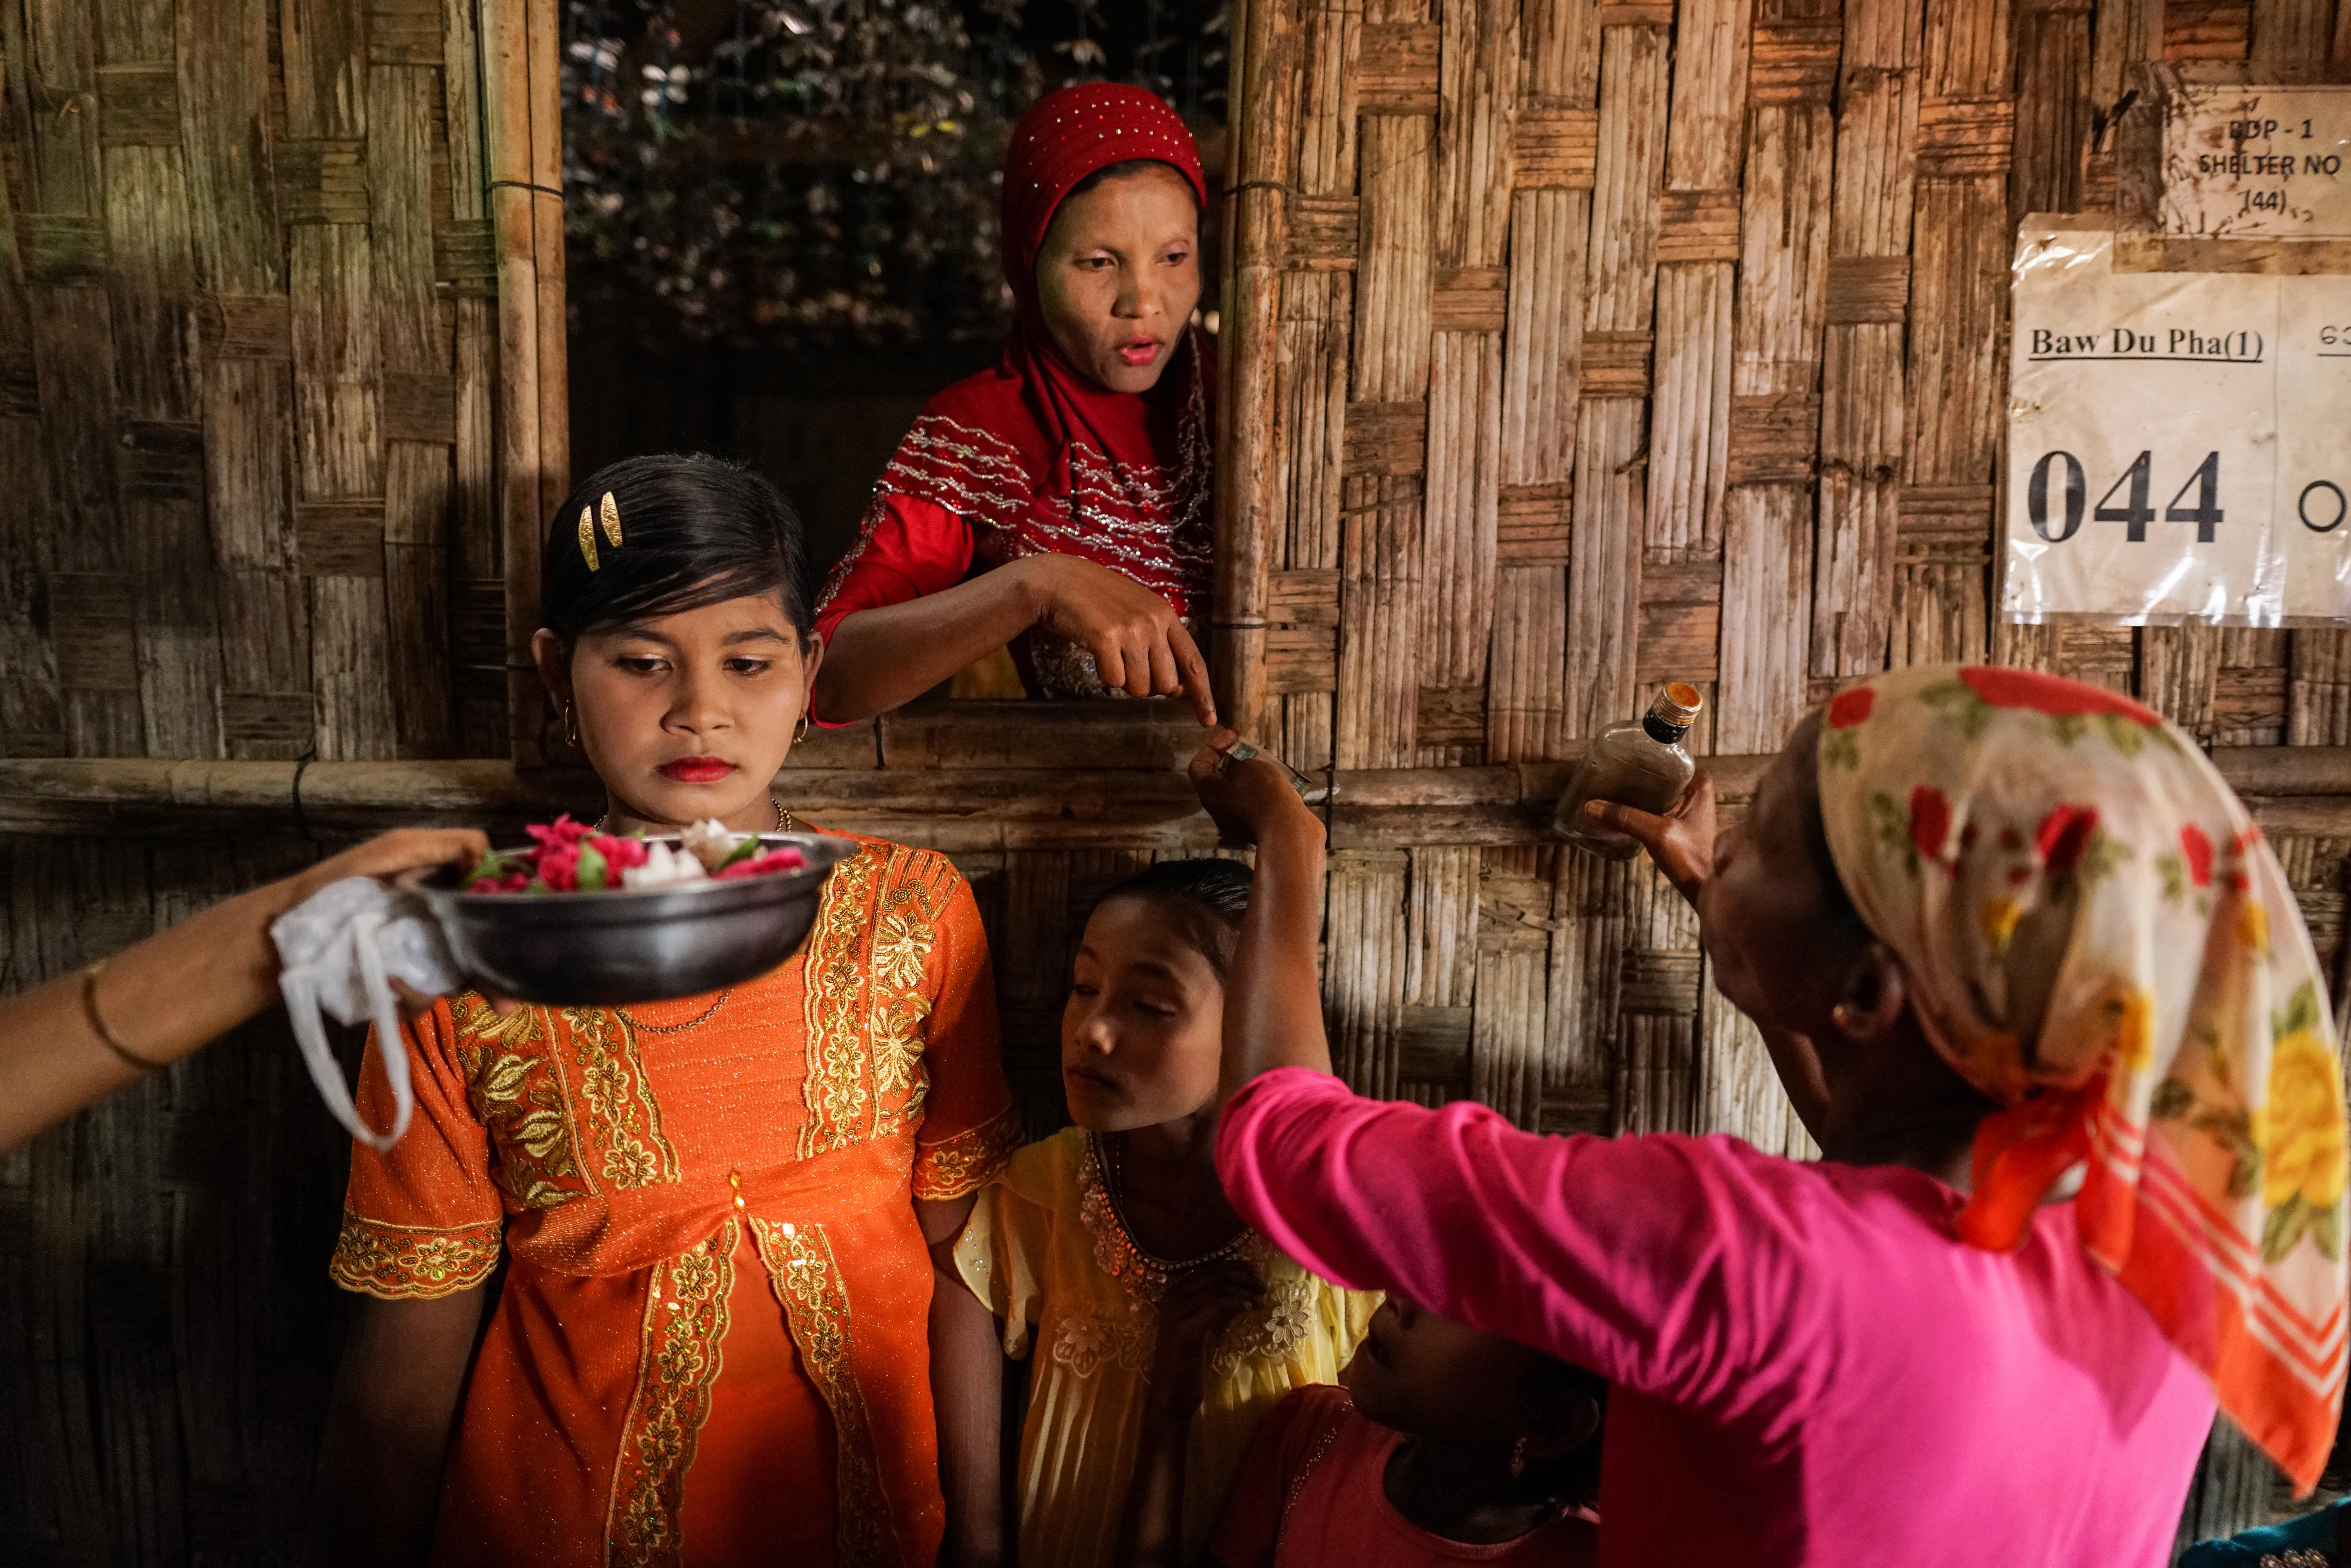 Friends and relatives prepare for a wedding at the Baw Du Pha Rohingya displacement camp in Rakhine state, Myanmar, on March 12, 2017